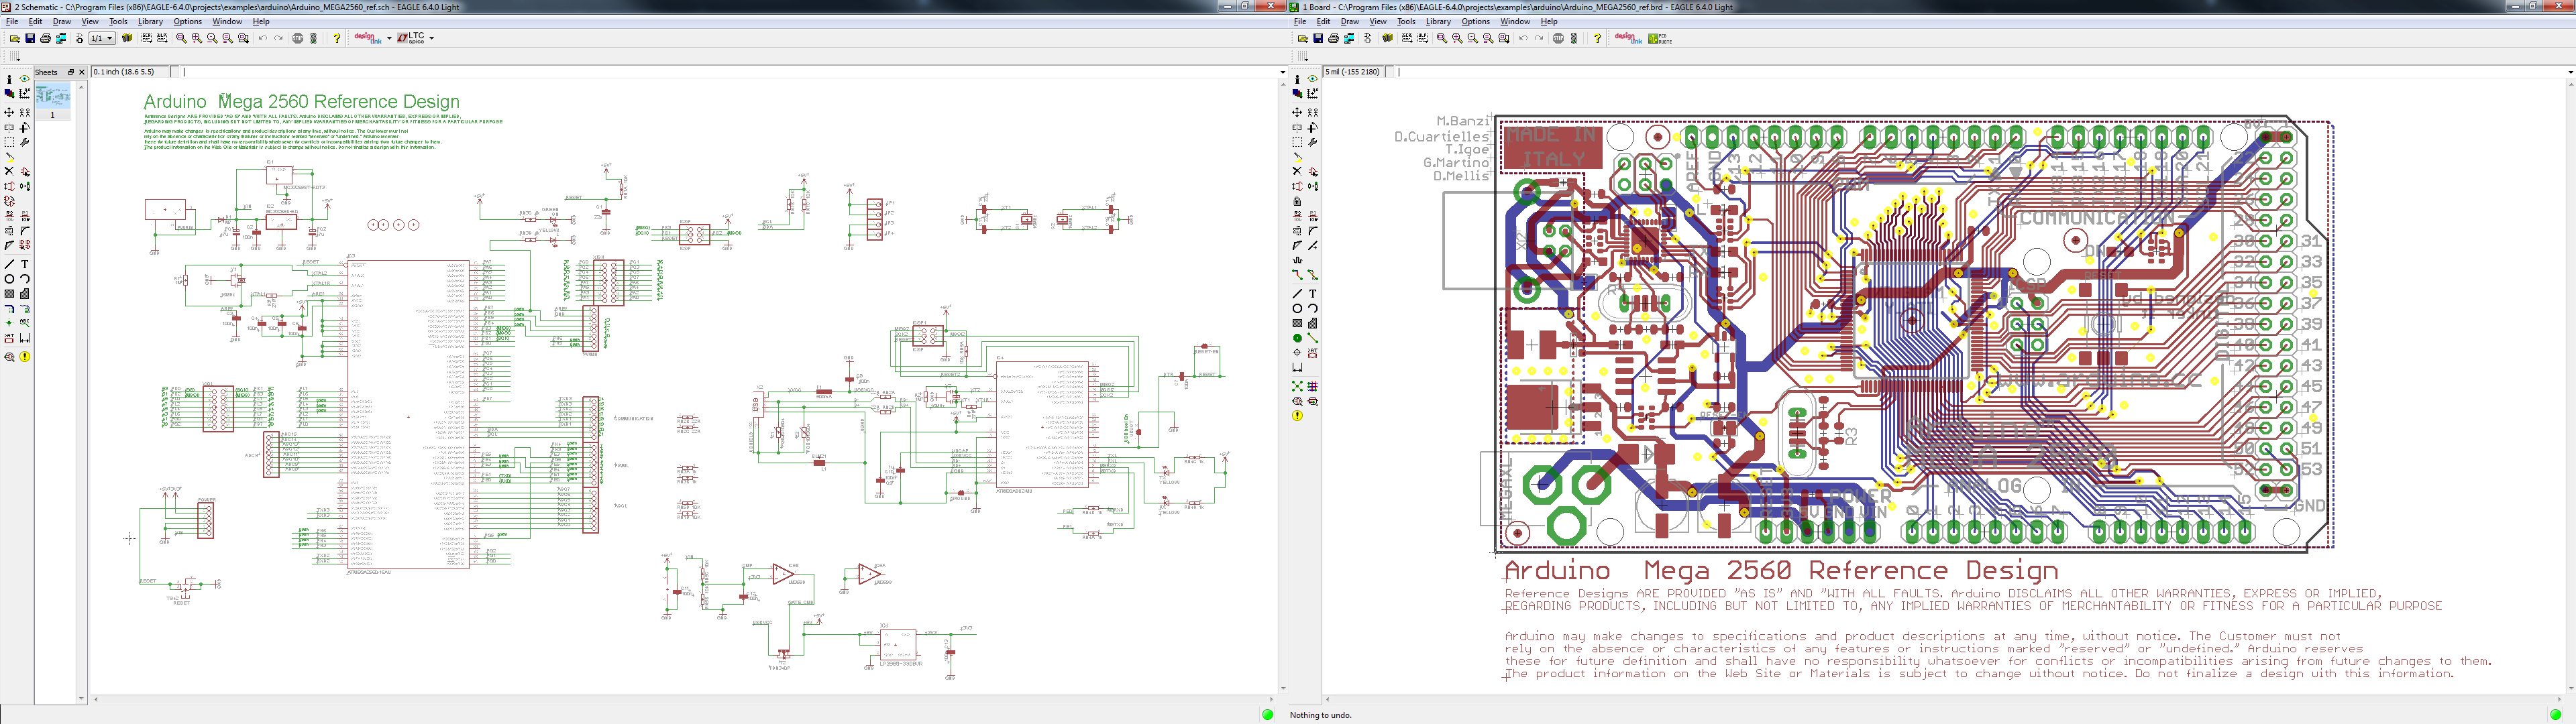 Electronic Circuit With Pcb Layout Making Pcbs In Eagle Board And Schematic View Both Open